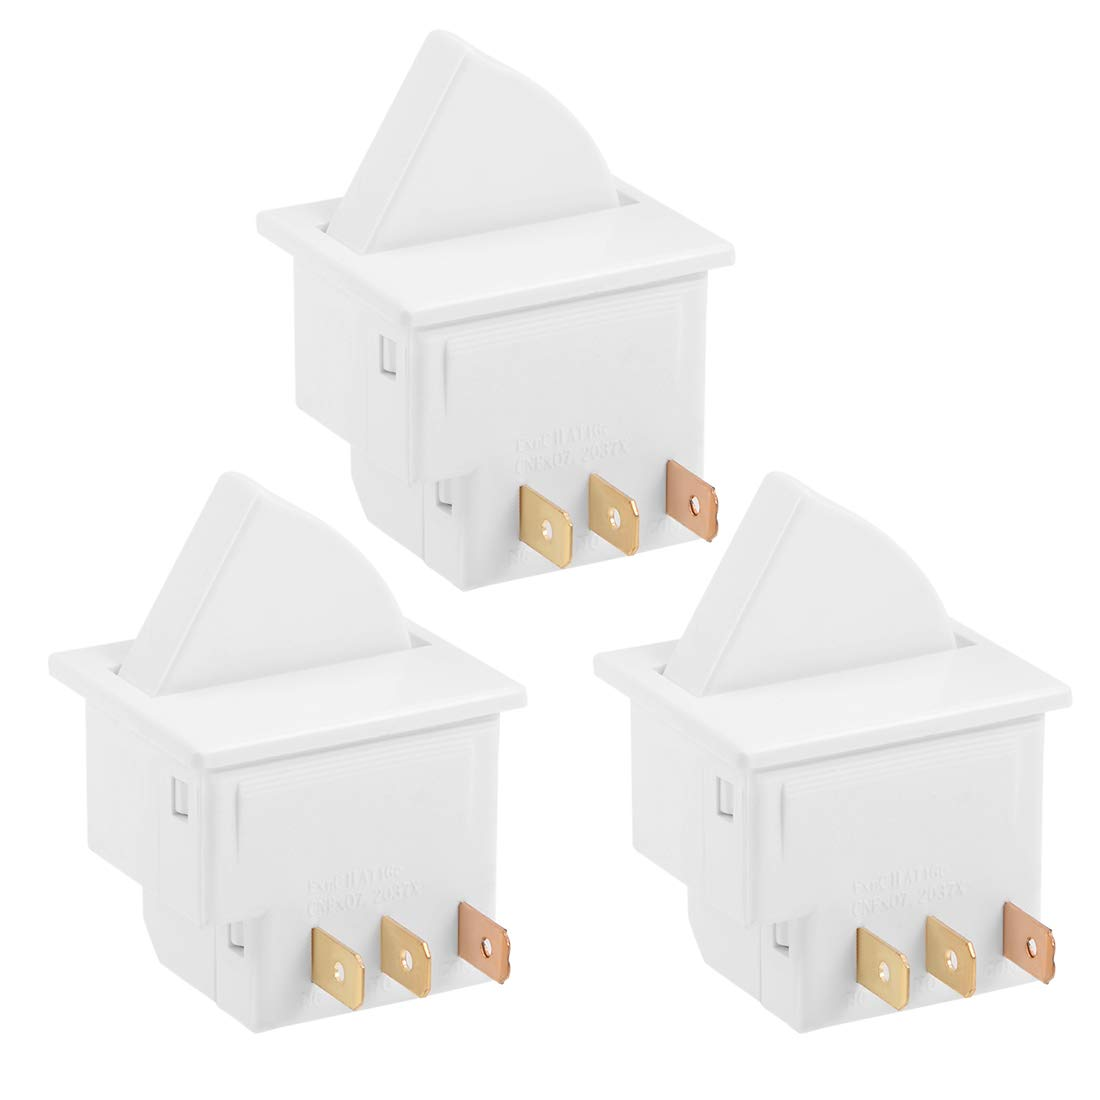 uxcell Refrigerator Door Light Switch Momentary Fridge Switches 1NC 1NO AC 250V 0.5A for LG Maytag Admiral 3pcs